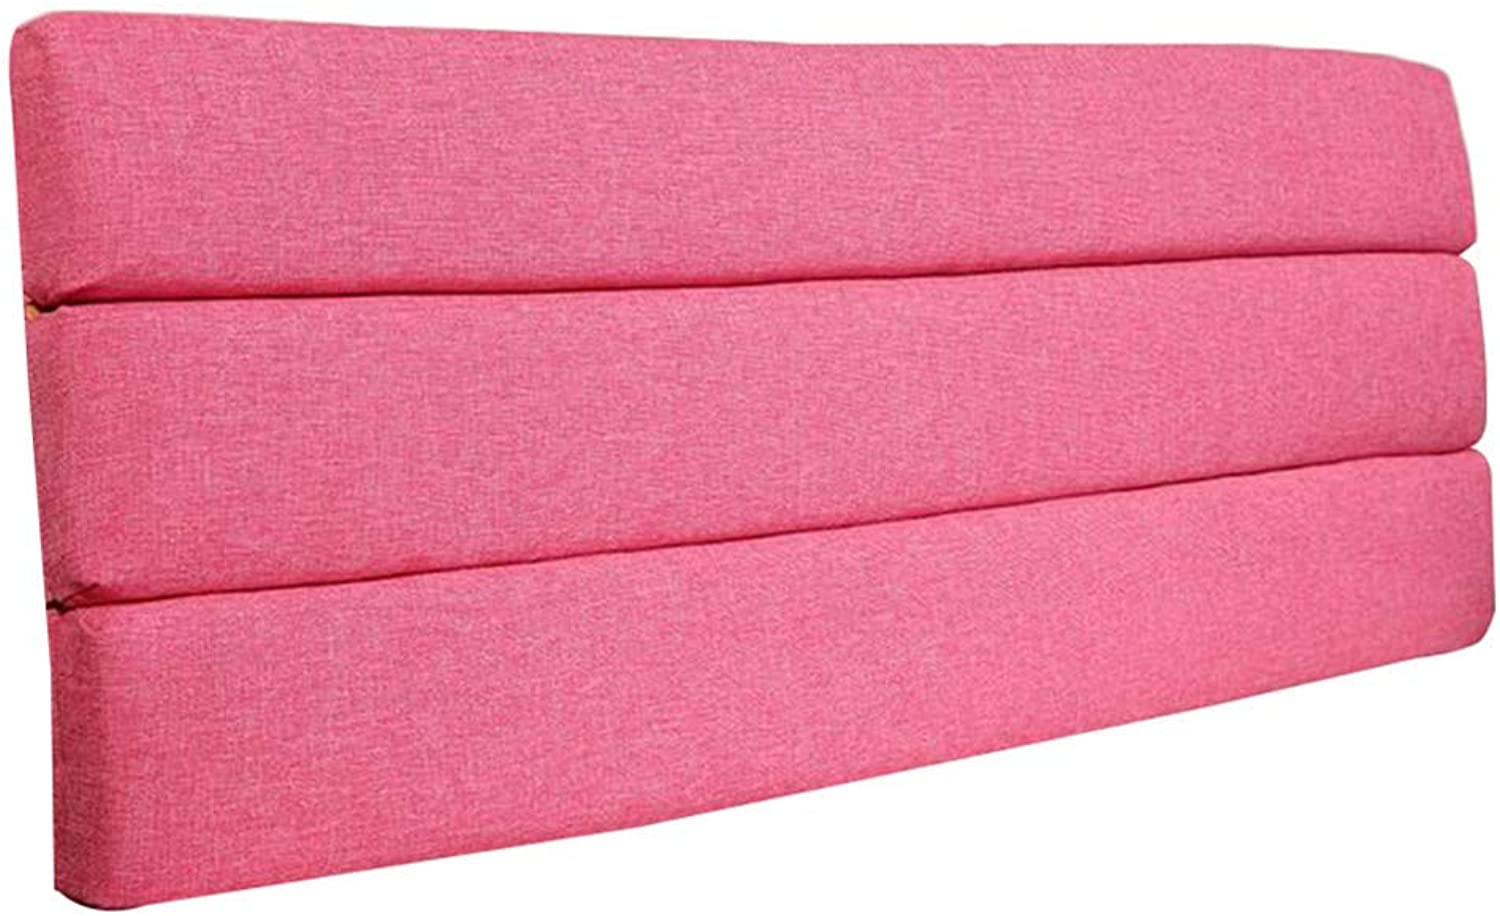 Backrest Bed Cushion Without Headboard Upholstery Linen Soft Headrest Upholstered Lumbar Pads, 4 colors (color   Pink, Size   150  60  6cm)